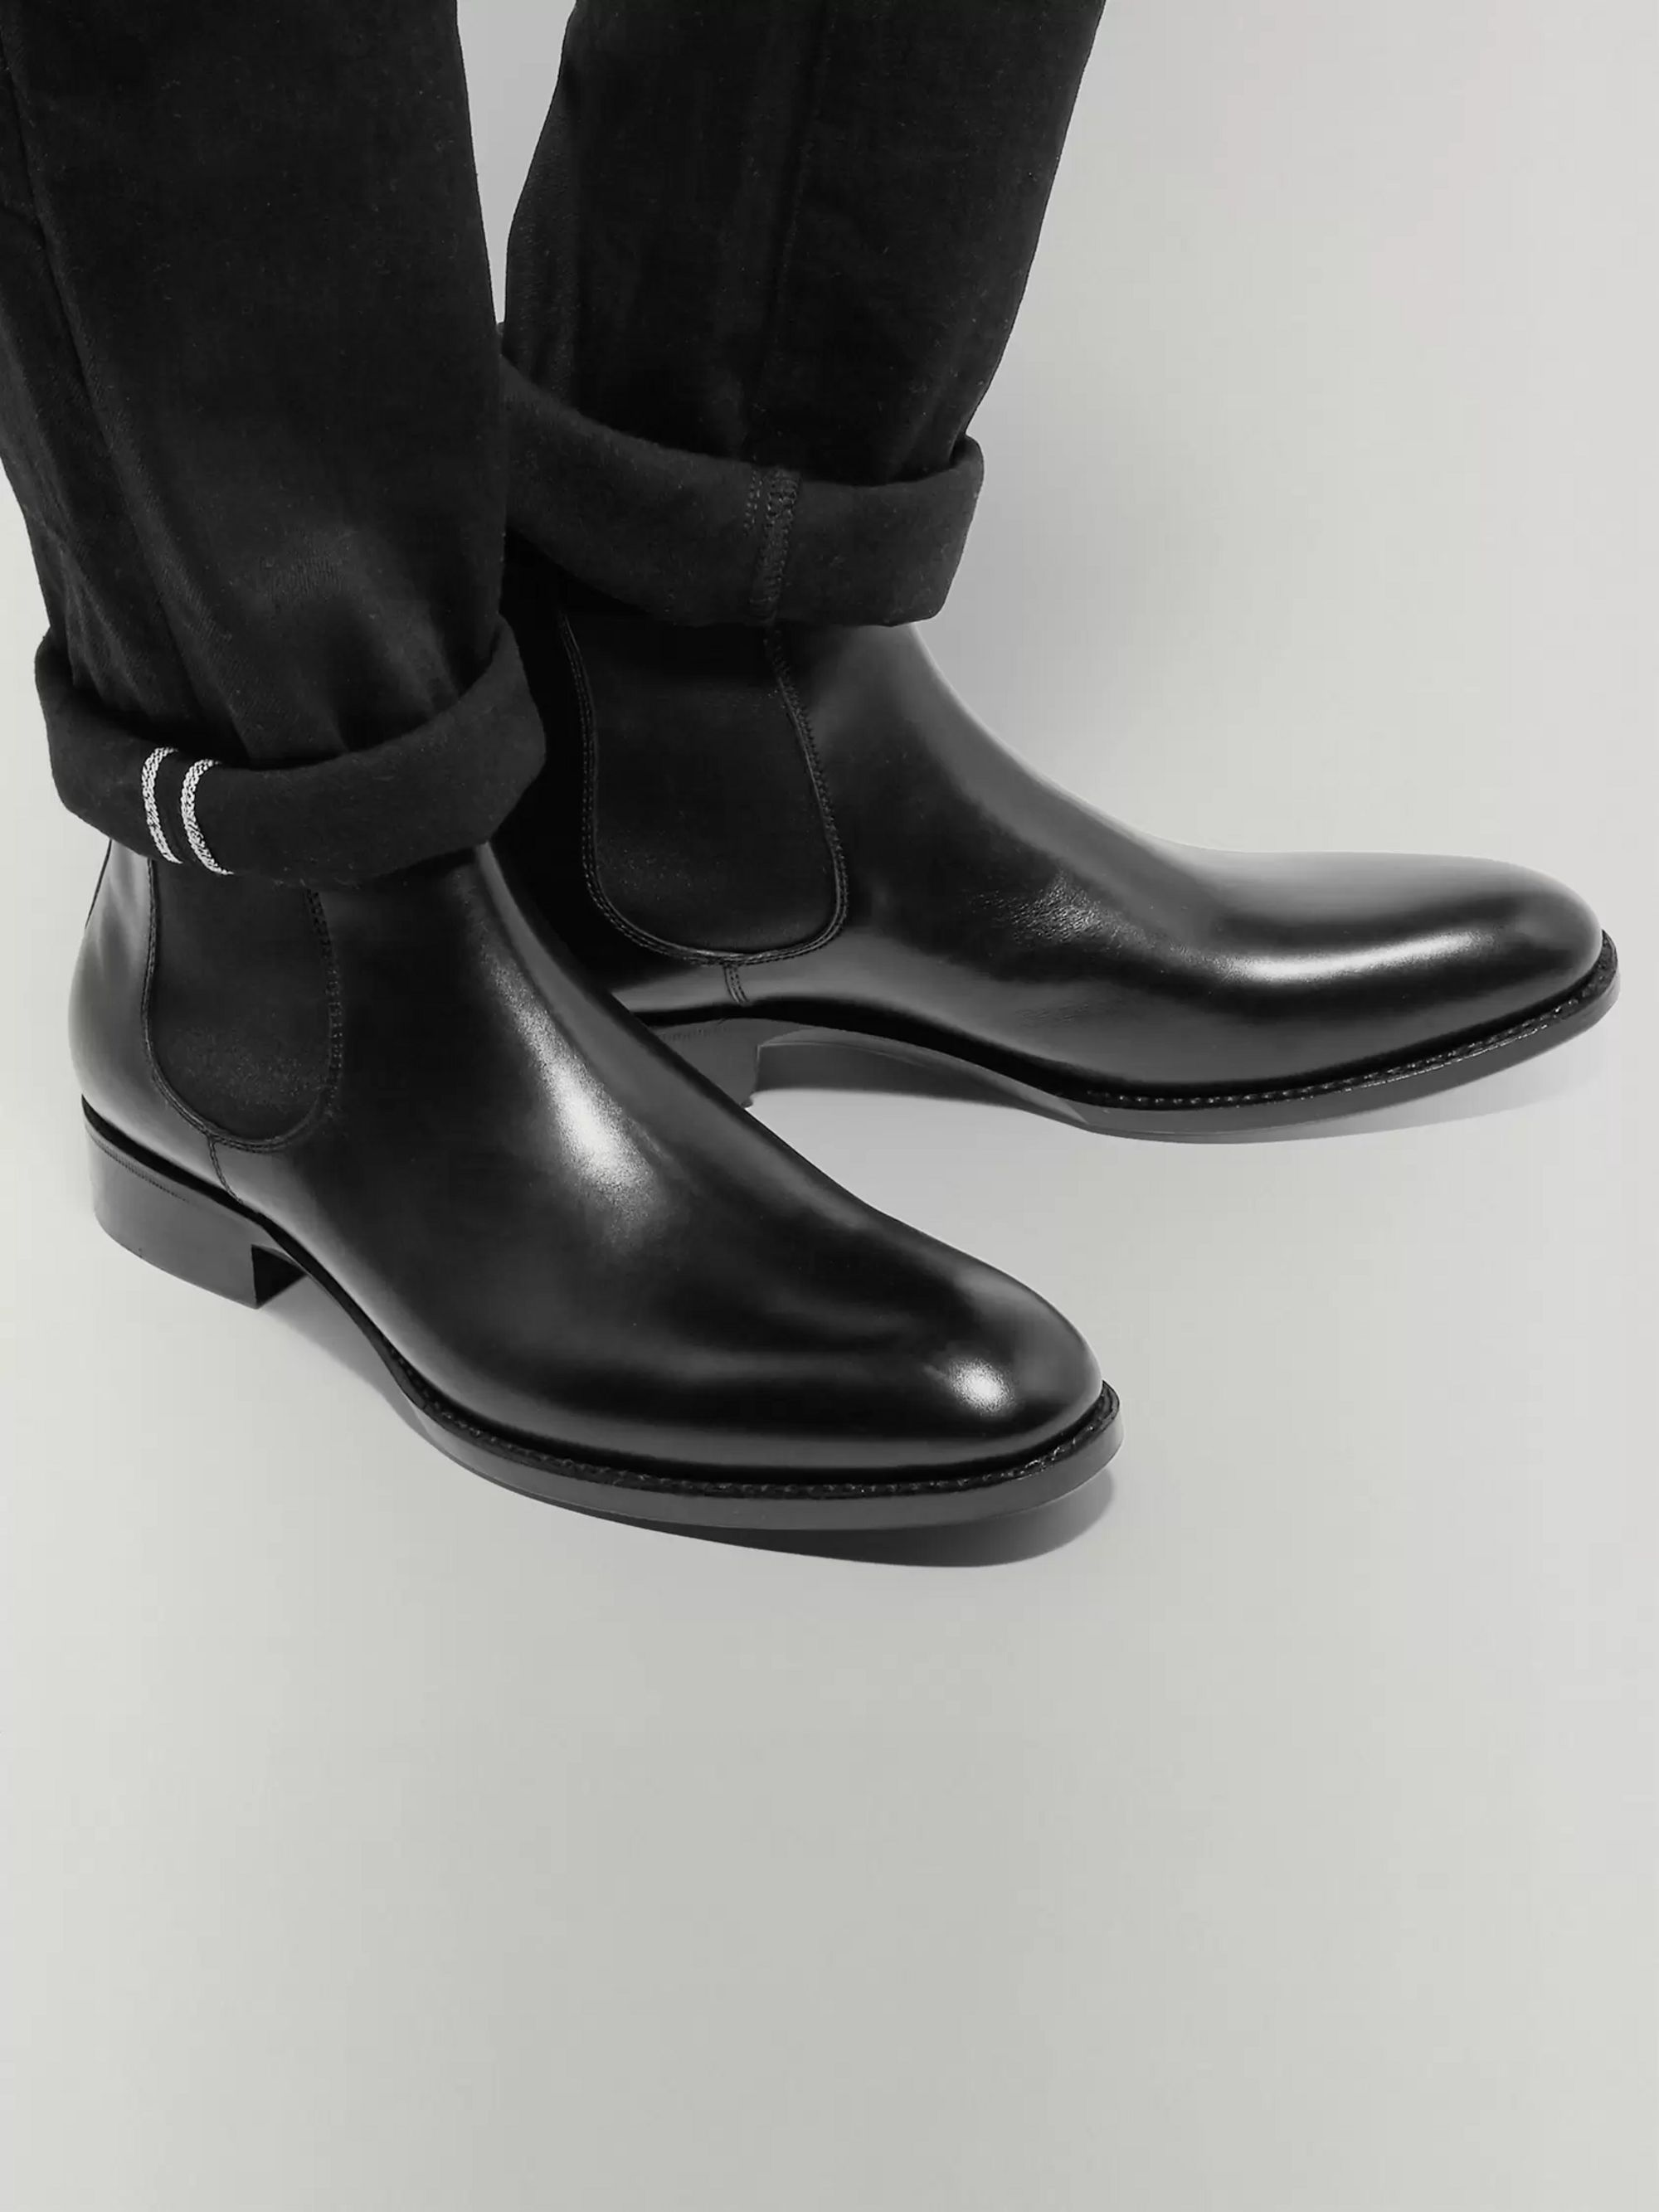 SALLE PRIVÉE Walter Leather Chelsea Boots